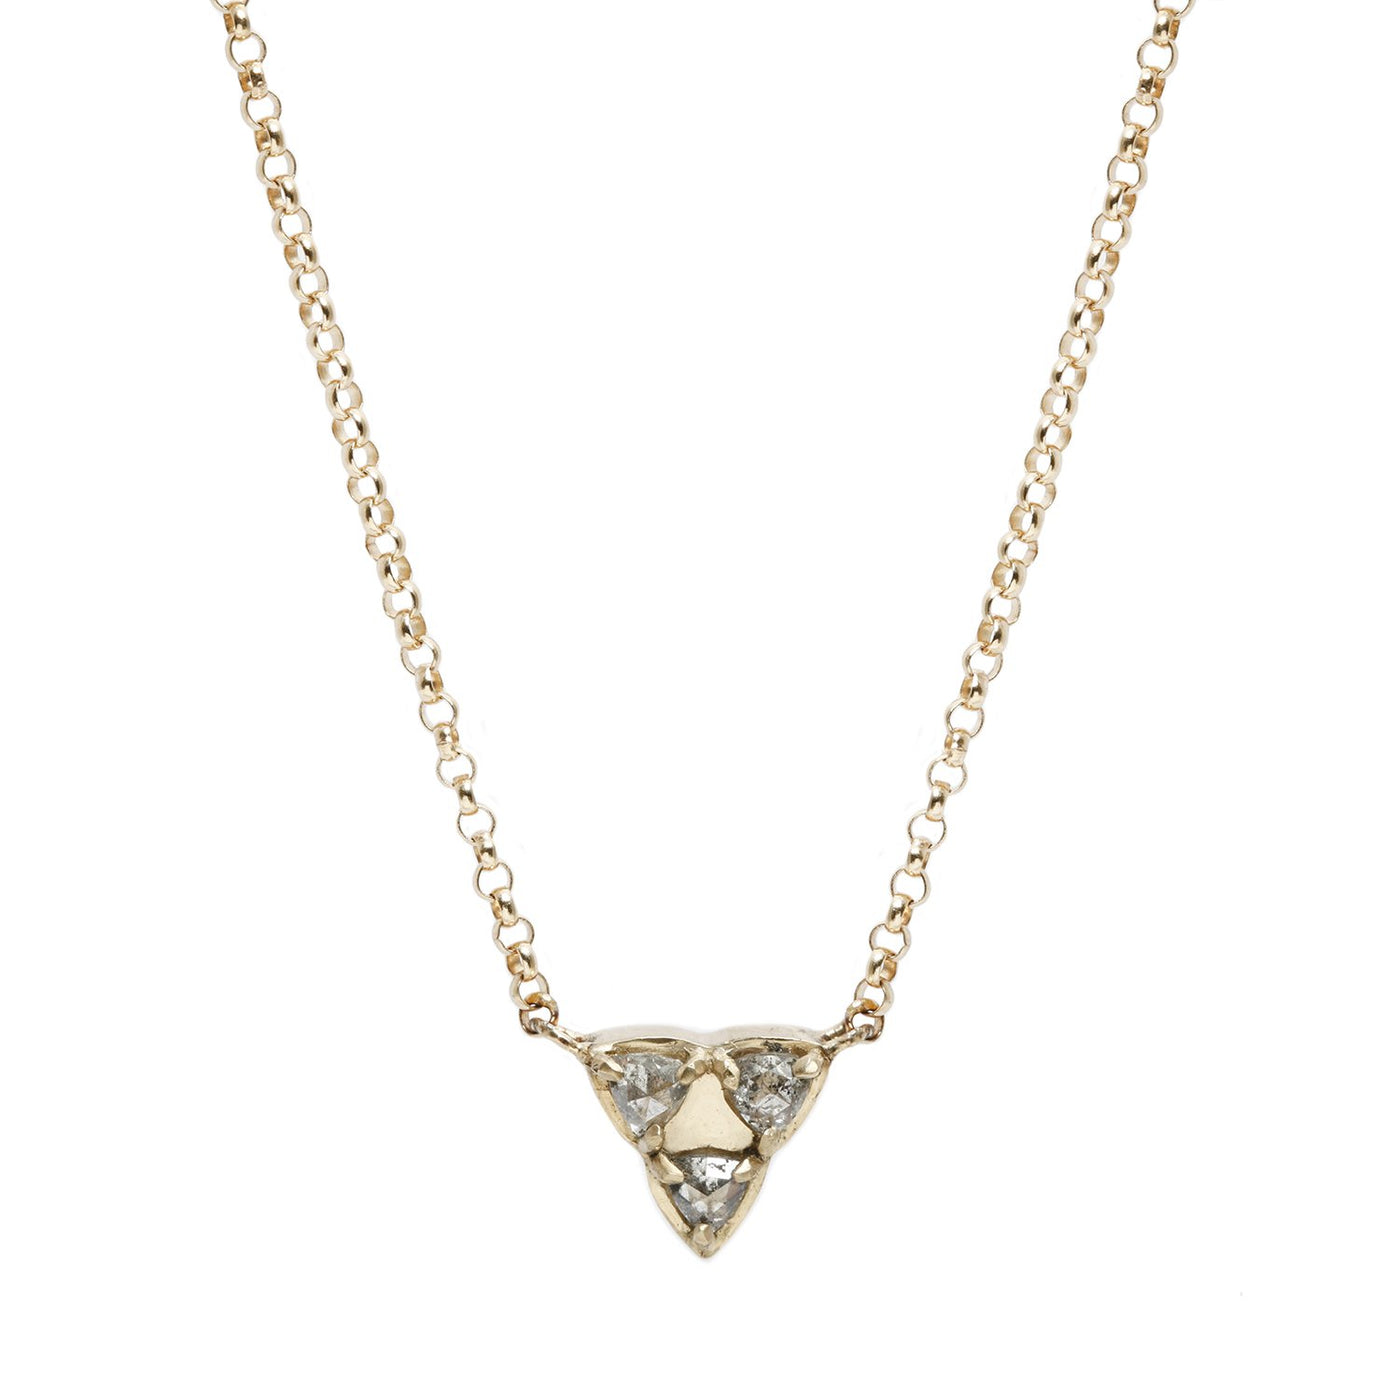 Lauren Wolf Three Diamond Triangle Necklace in Yellow Gold